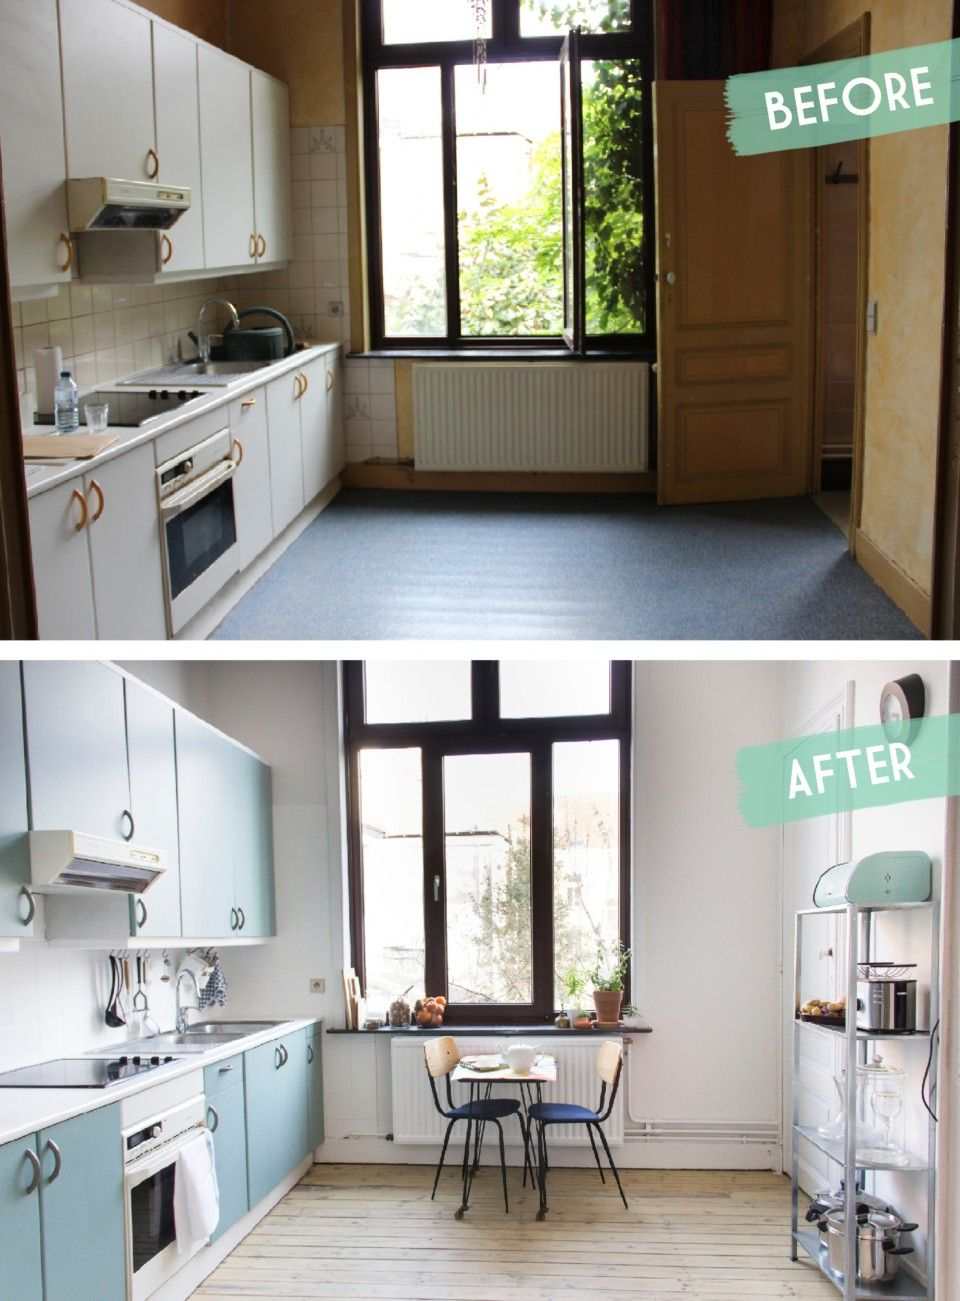 Kitchen makeover before after une cuisine avant - Cout d une cuisine ikea ...